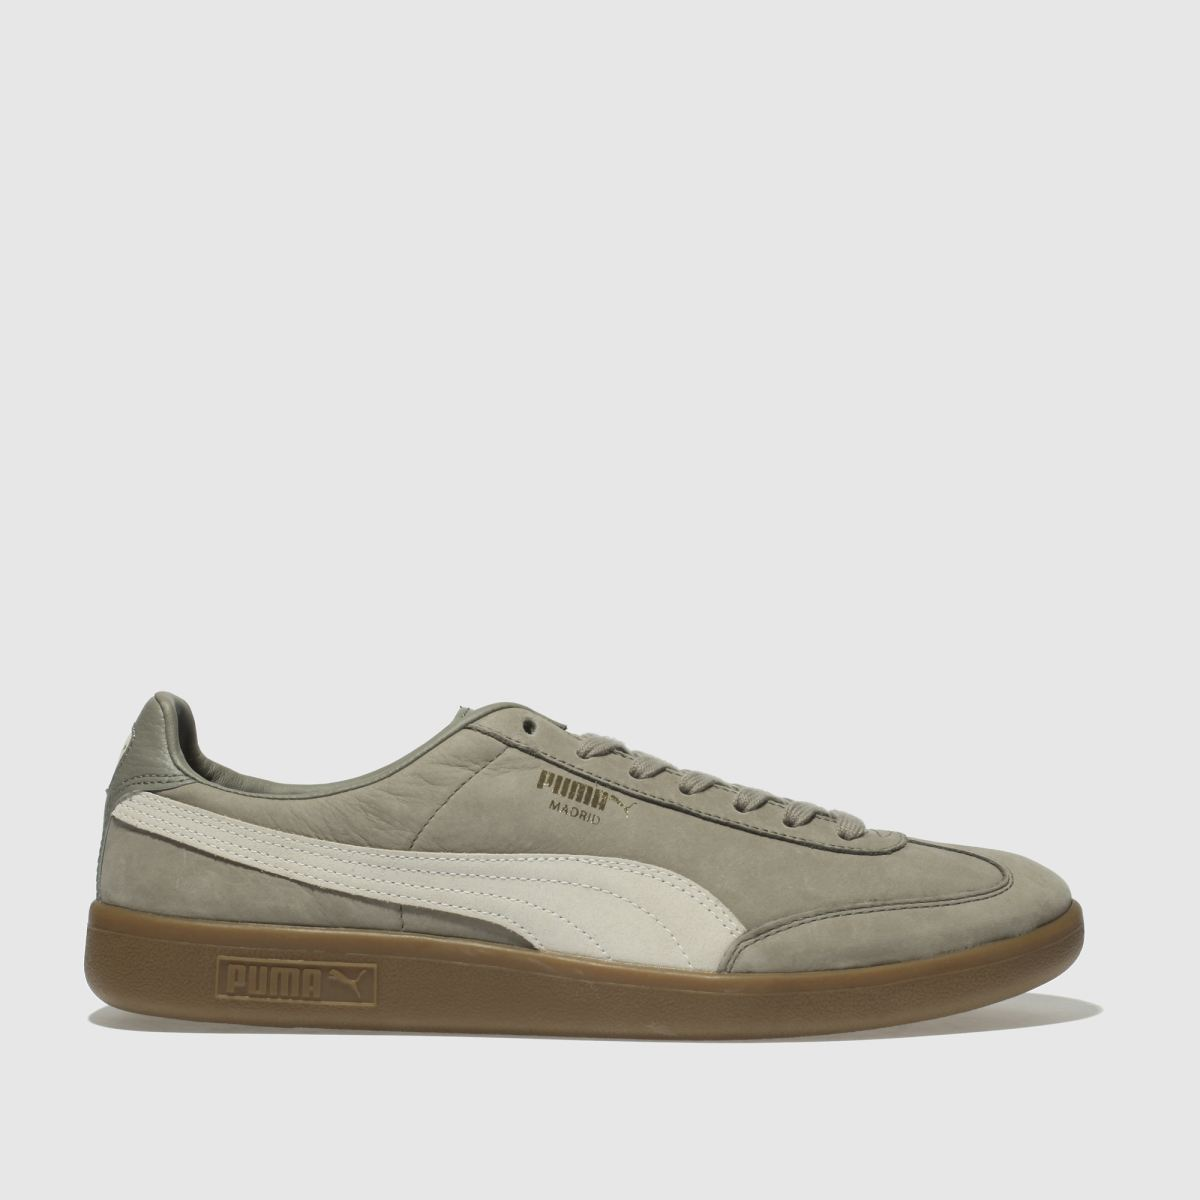 Puma Light Grey Madrid Nubuck Trainers